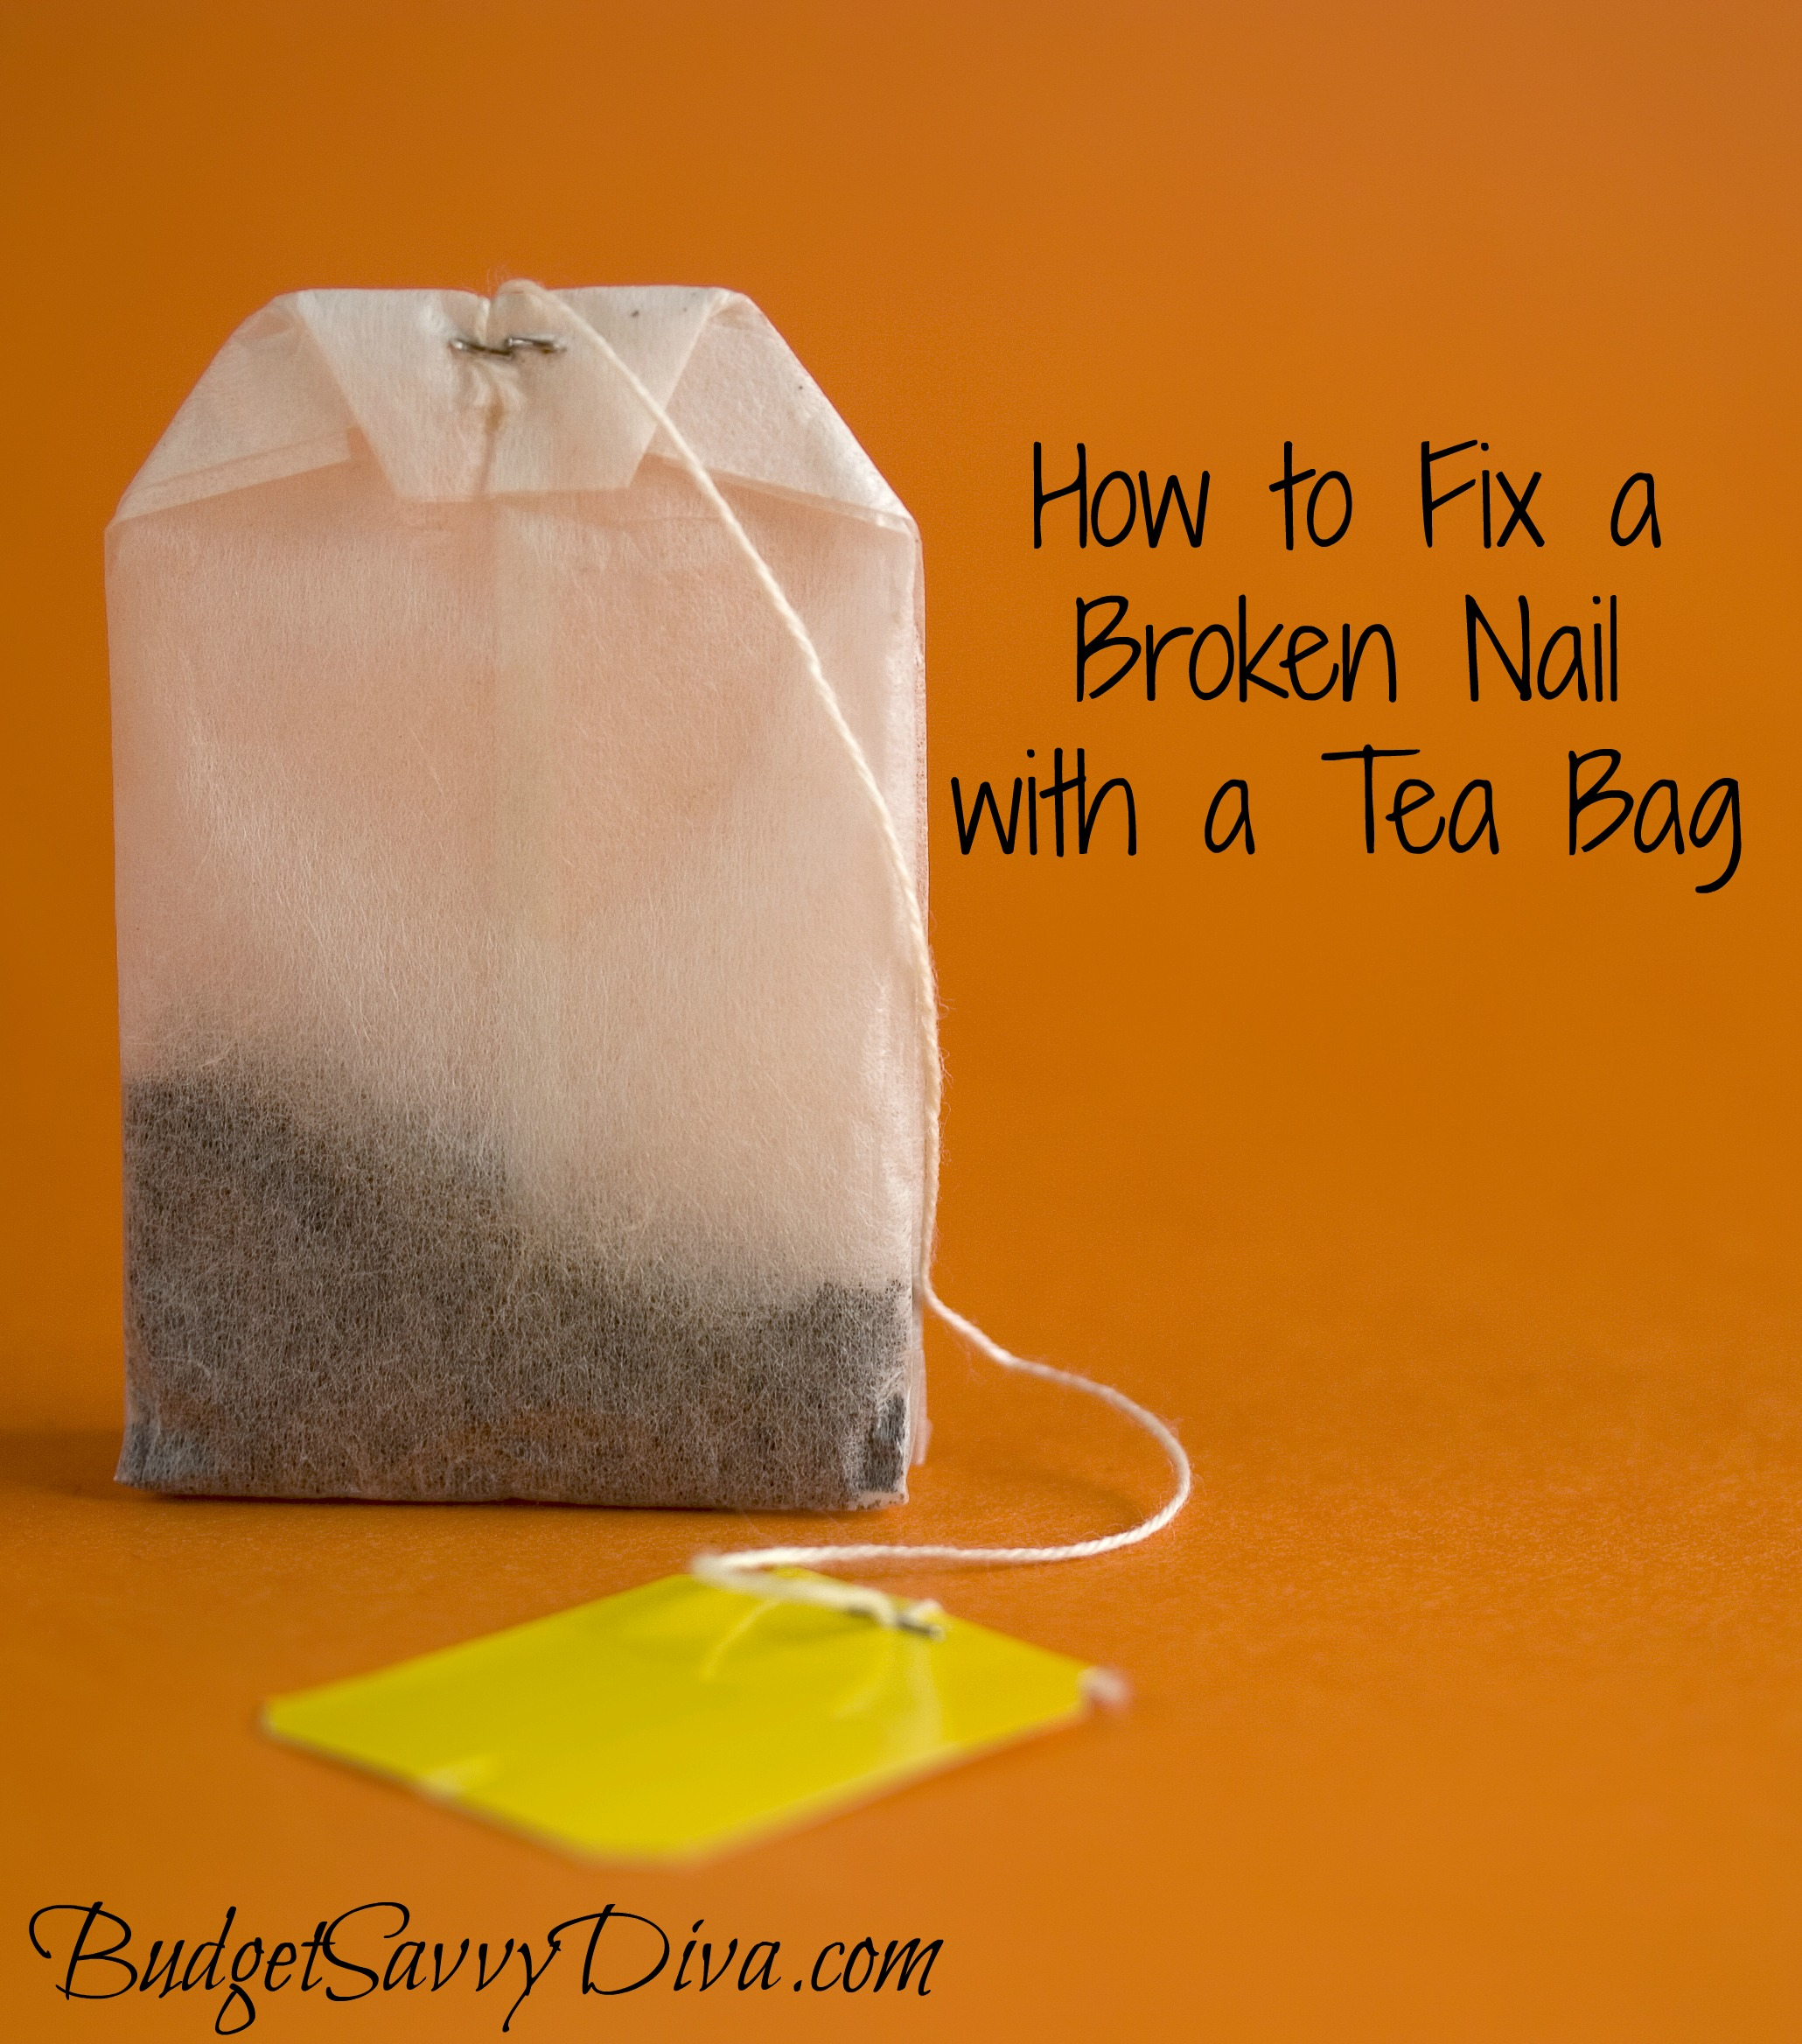 How to fix a broken nail with a tea bag budget savvy diva for How to fix a broken nail with a tea bag